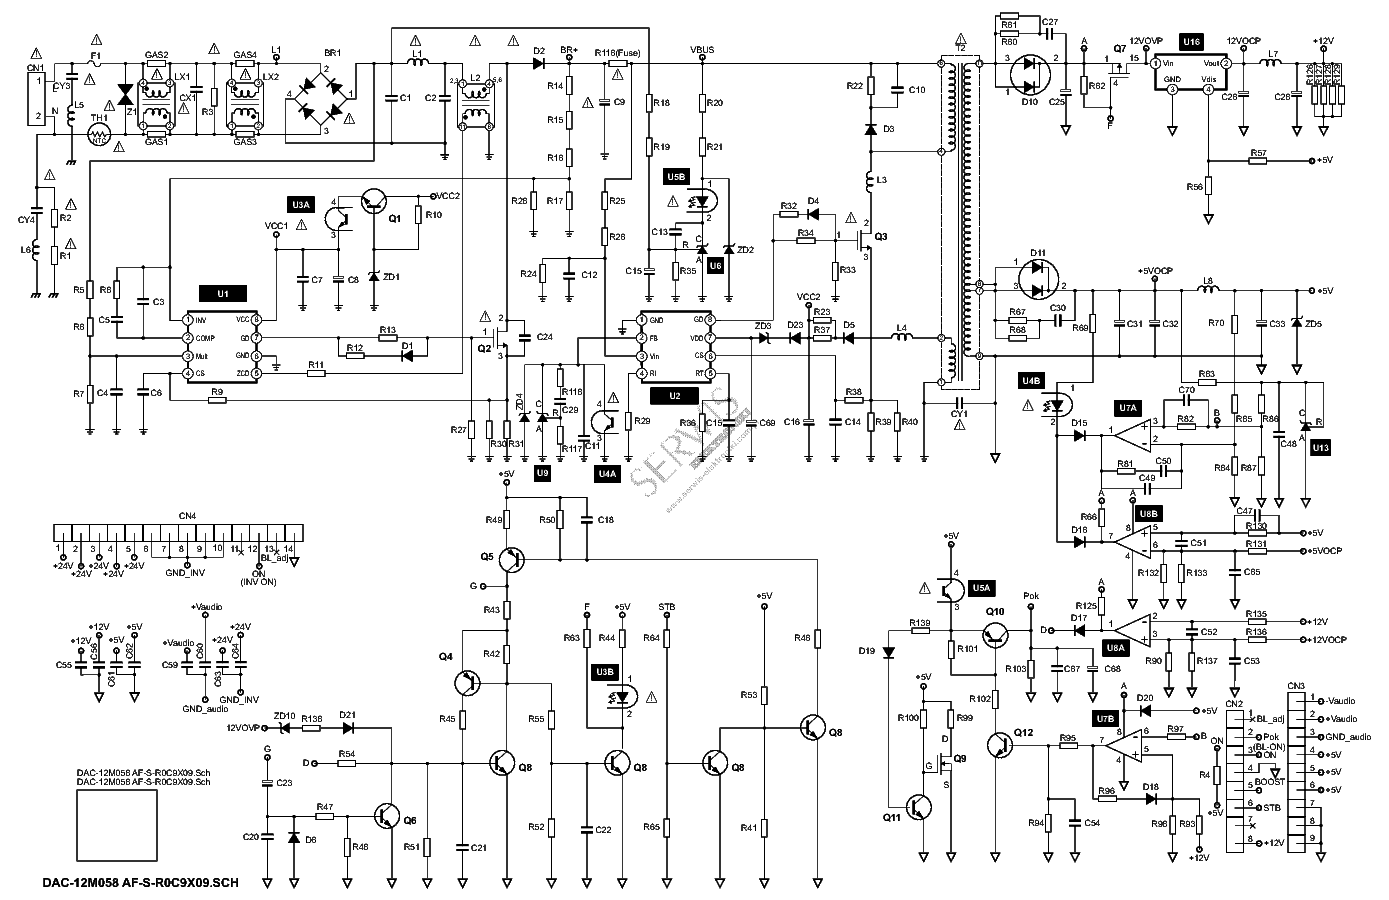 delta_dac-12m058af-s-r0c9x09_sch.pdf_1 Powerflex Wiring Diagram Pdf on 5hp dimensions, ul type 1 kit for, brake resistor, i o wiring, fan disable, cat4 exemple, frame size, using curve, mov jumper, enclosure kit, open cover,